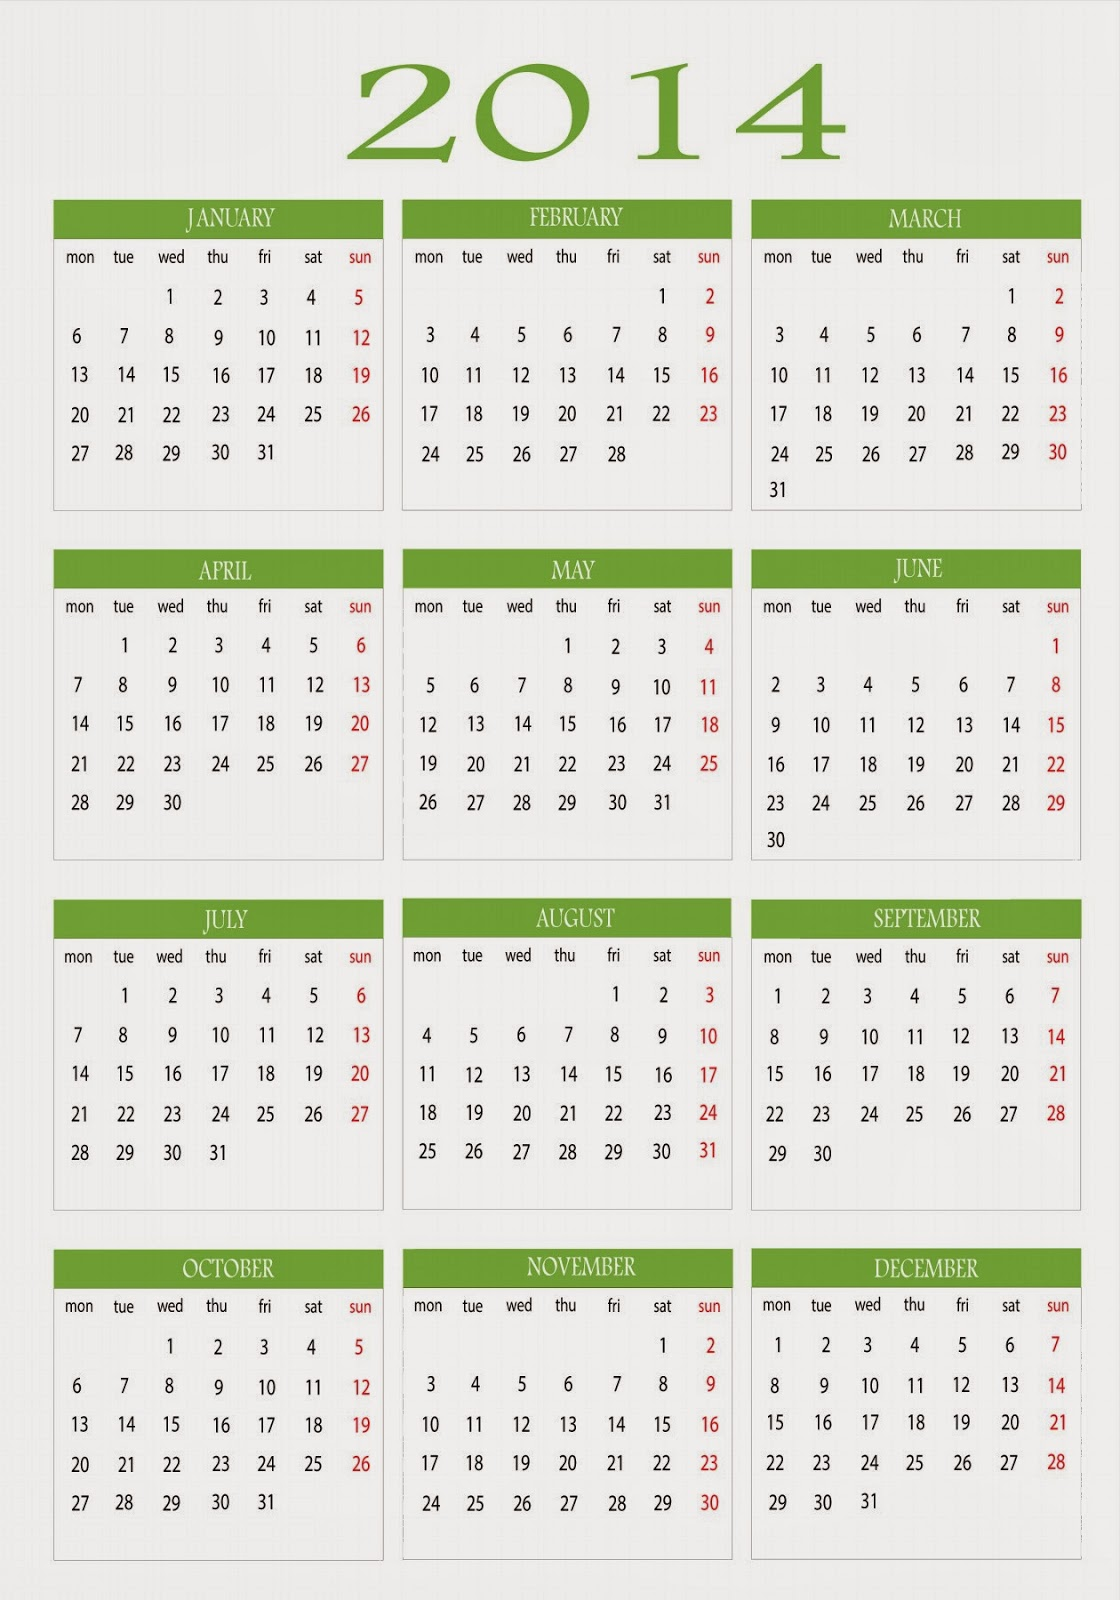 2014 Calendar Wallpapers